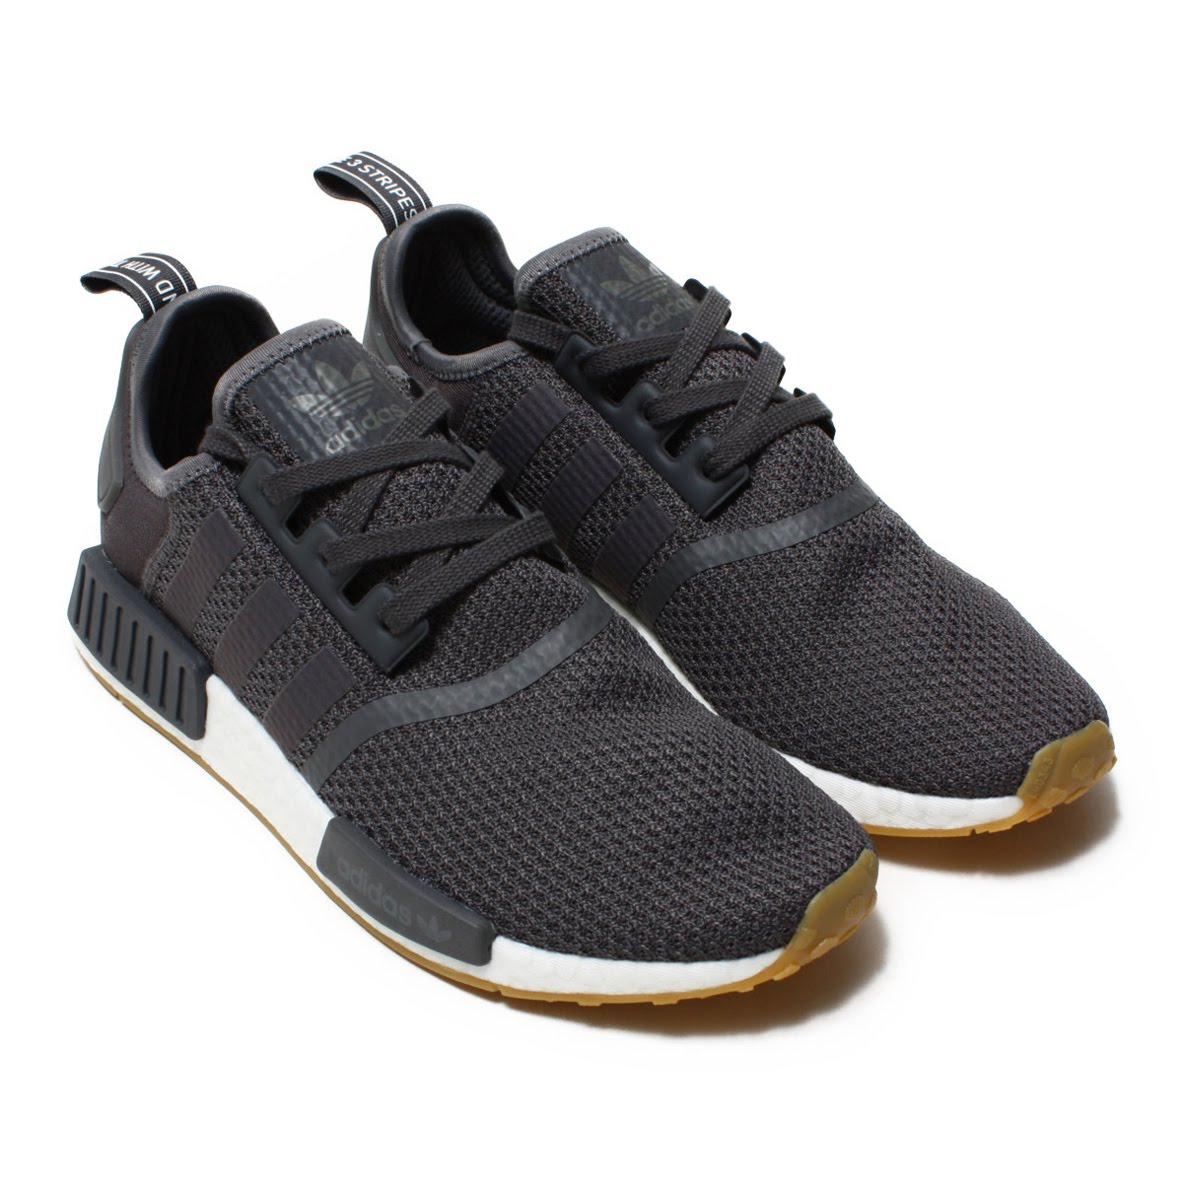 the best attitude 05dd5 ca8c9 adidas Originals NMD_R1 (Adidas originals N M D R1) Grey/Grey/Core Black  18FW-I